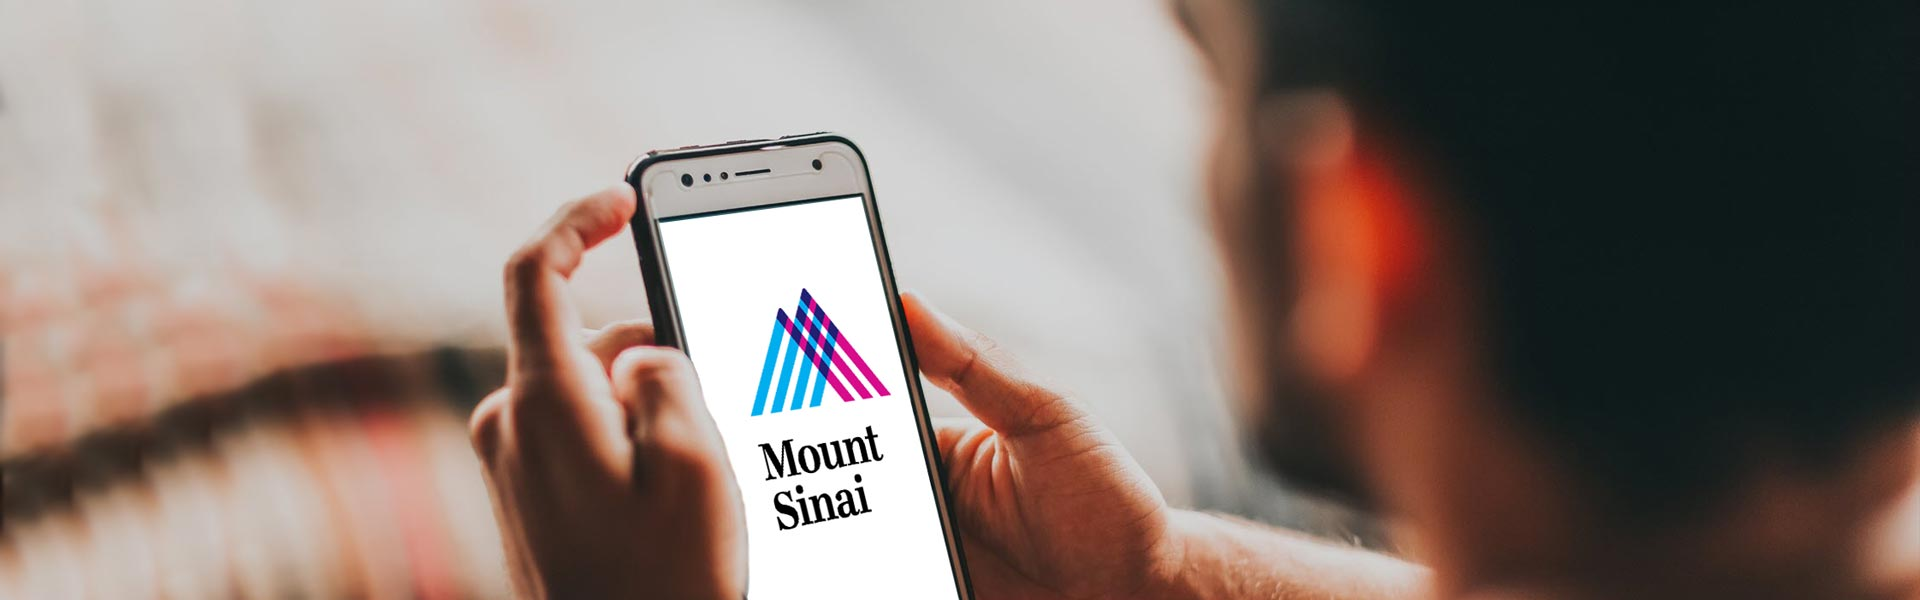 iPhone with a Mount Sinai logo